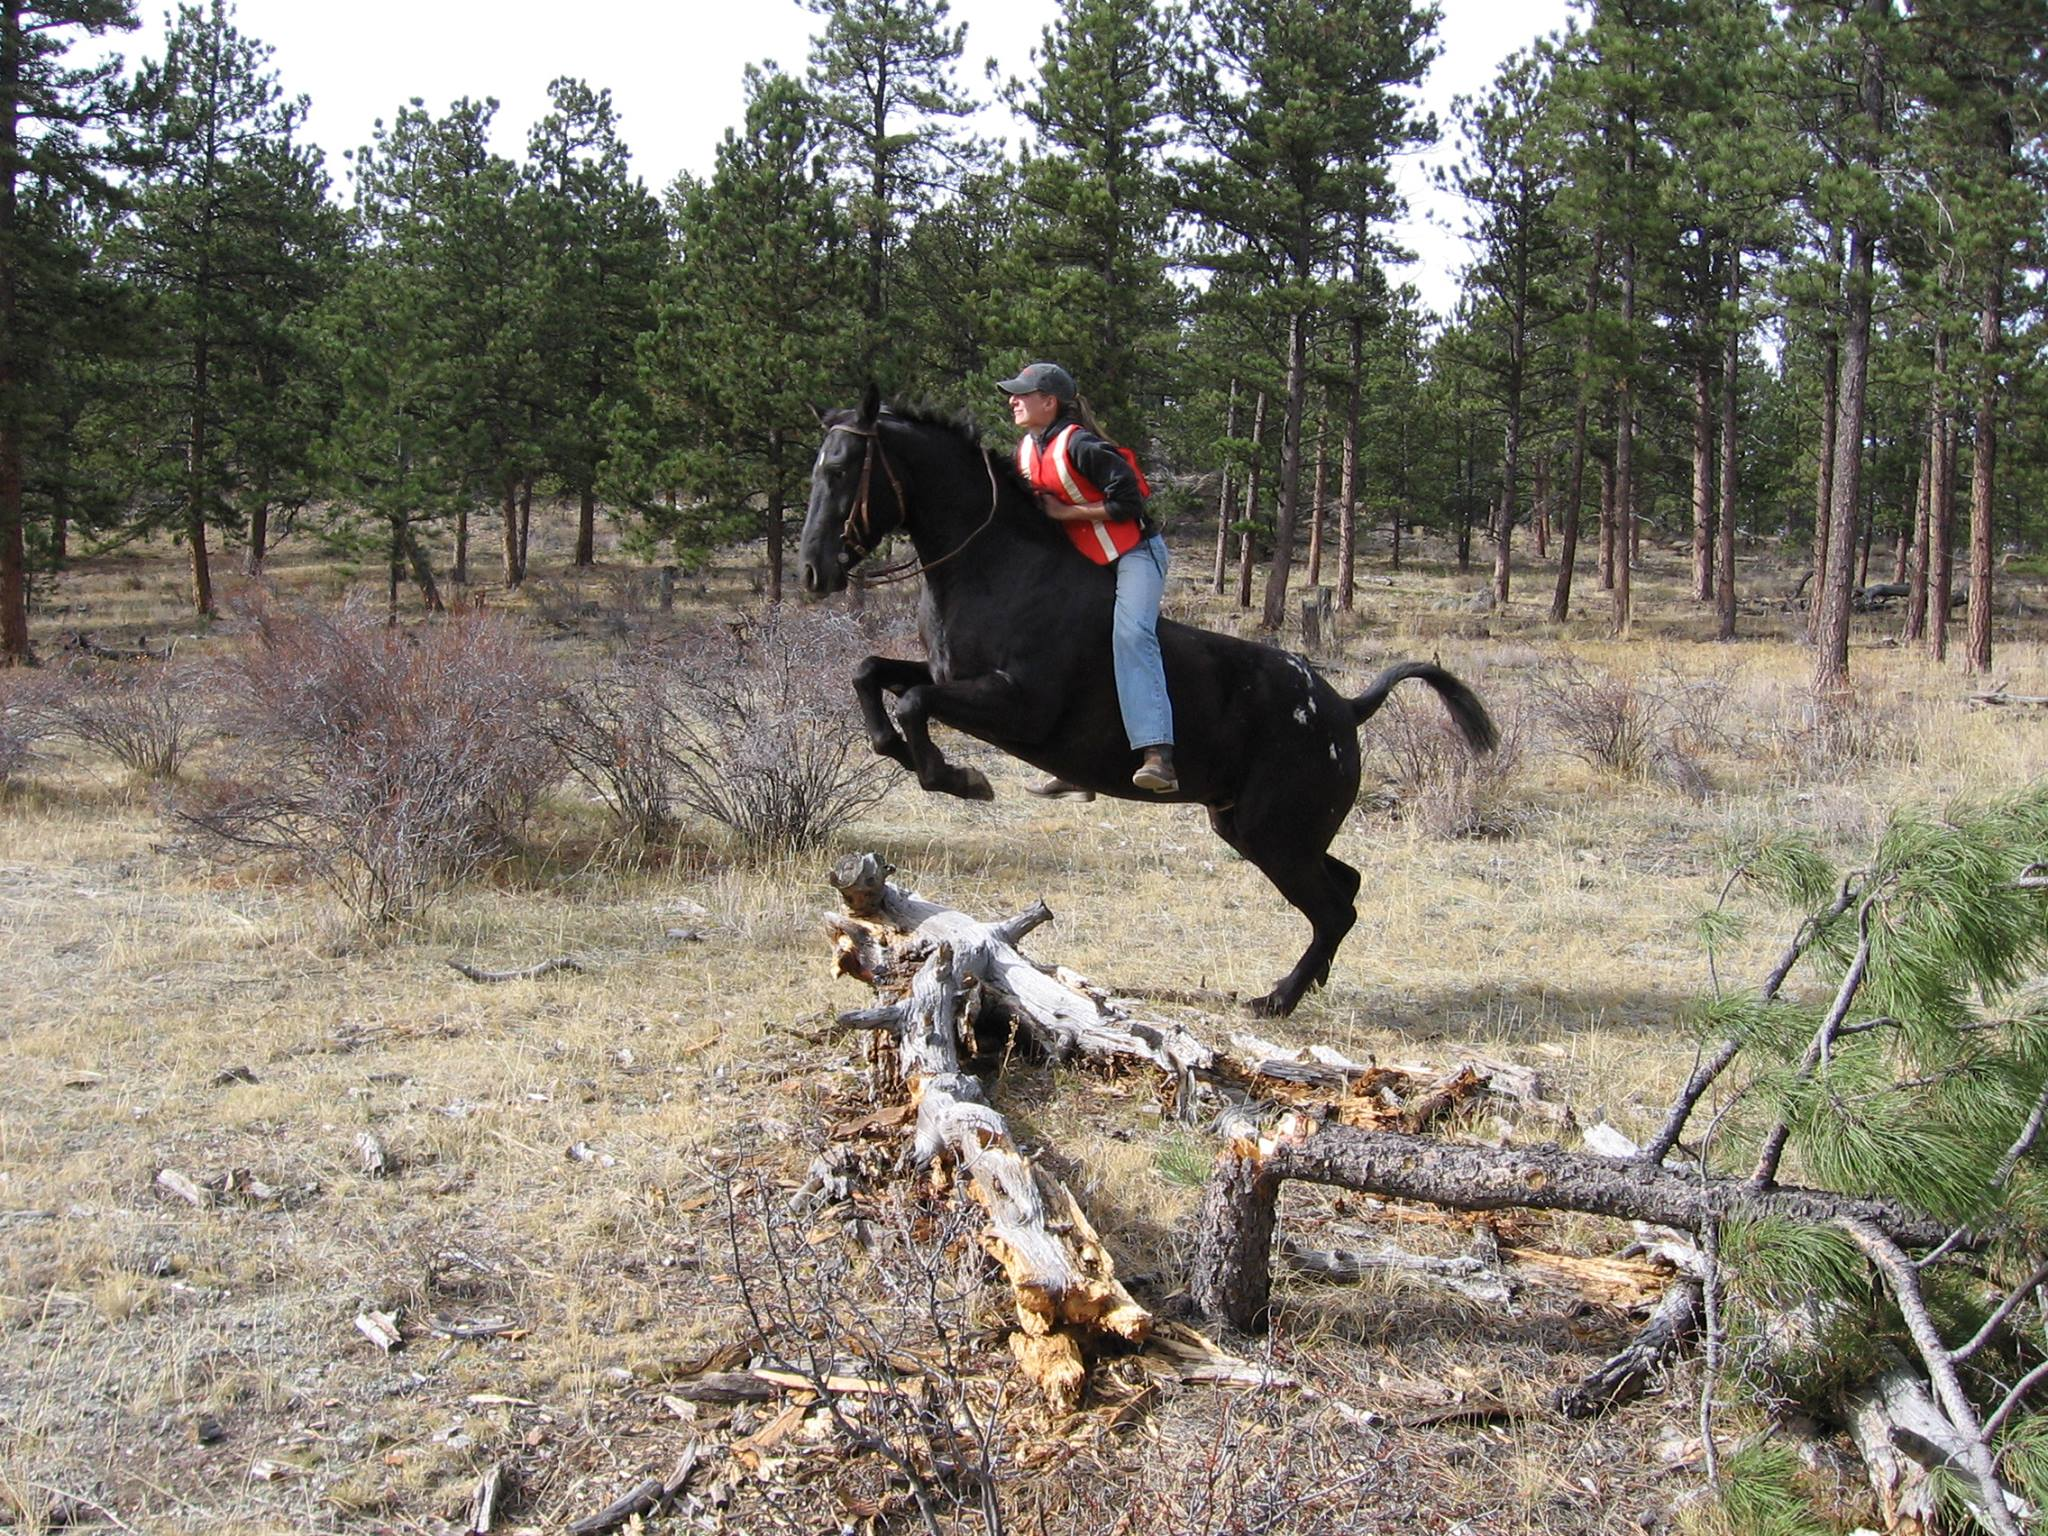 Blog author jumping horse over log